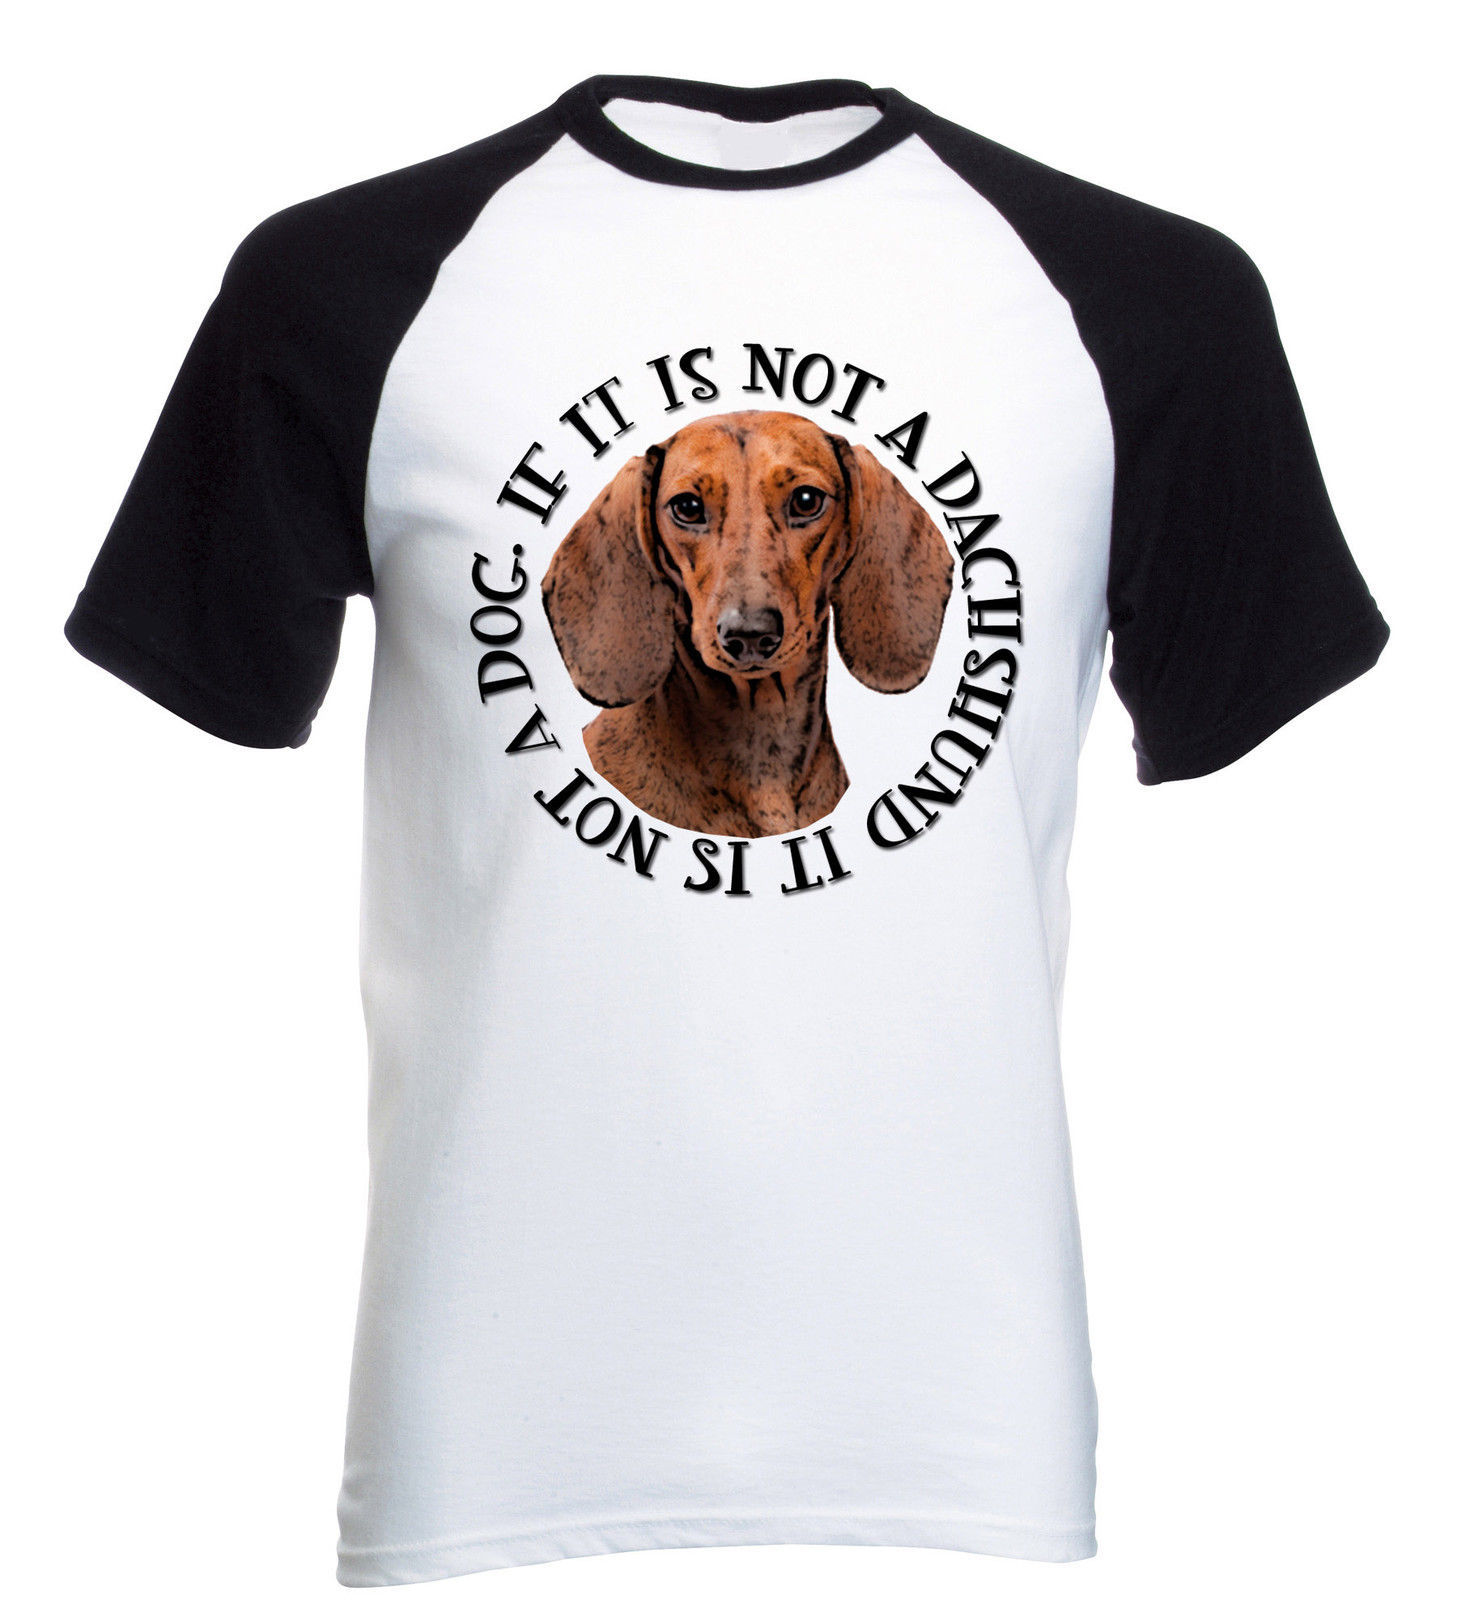 Primary image for DACHSHUND IF IT IS NOT A - COTTON BASEBALL T-SHIRT ALL SIZES IN STOCK